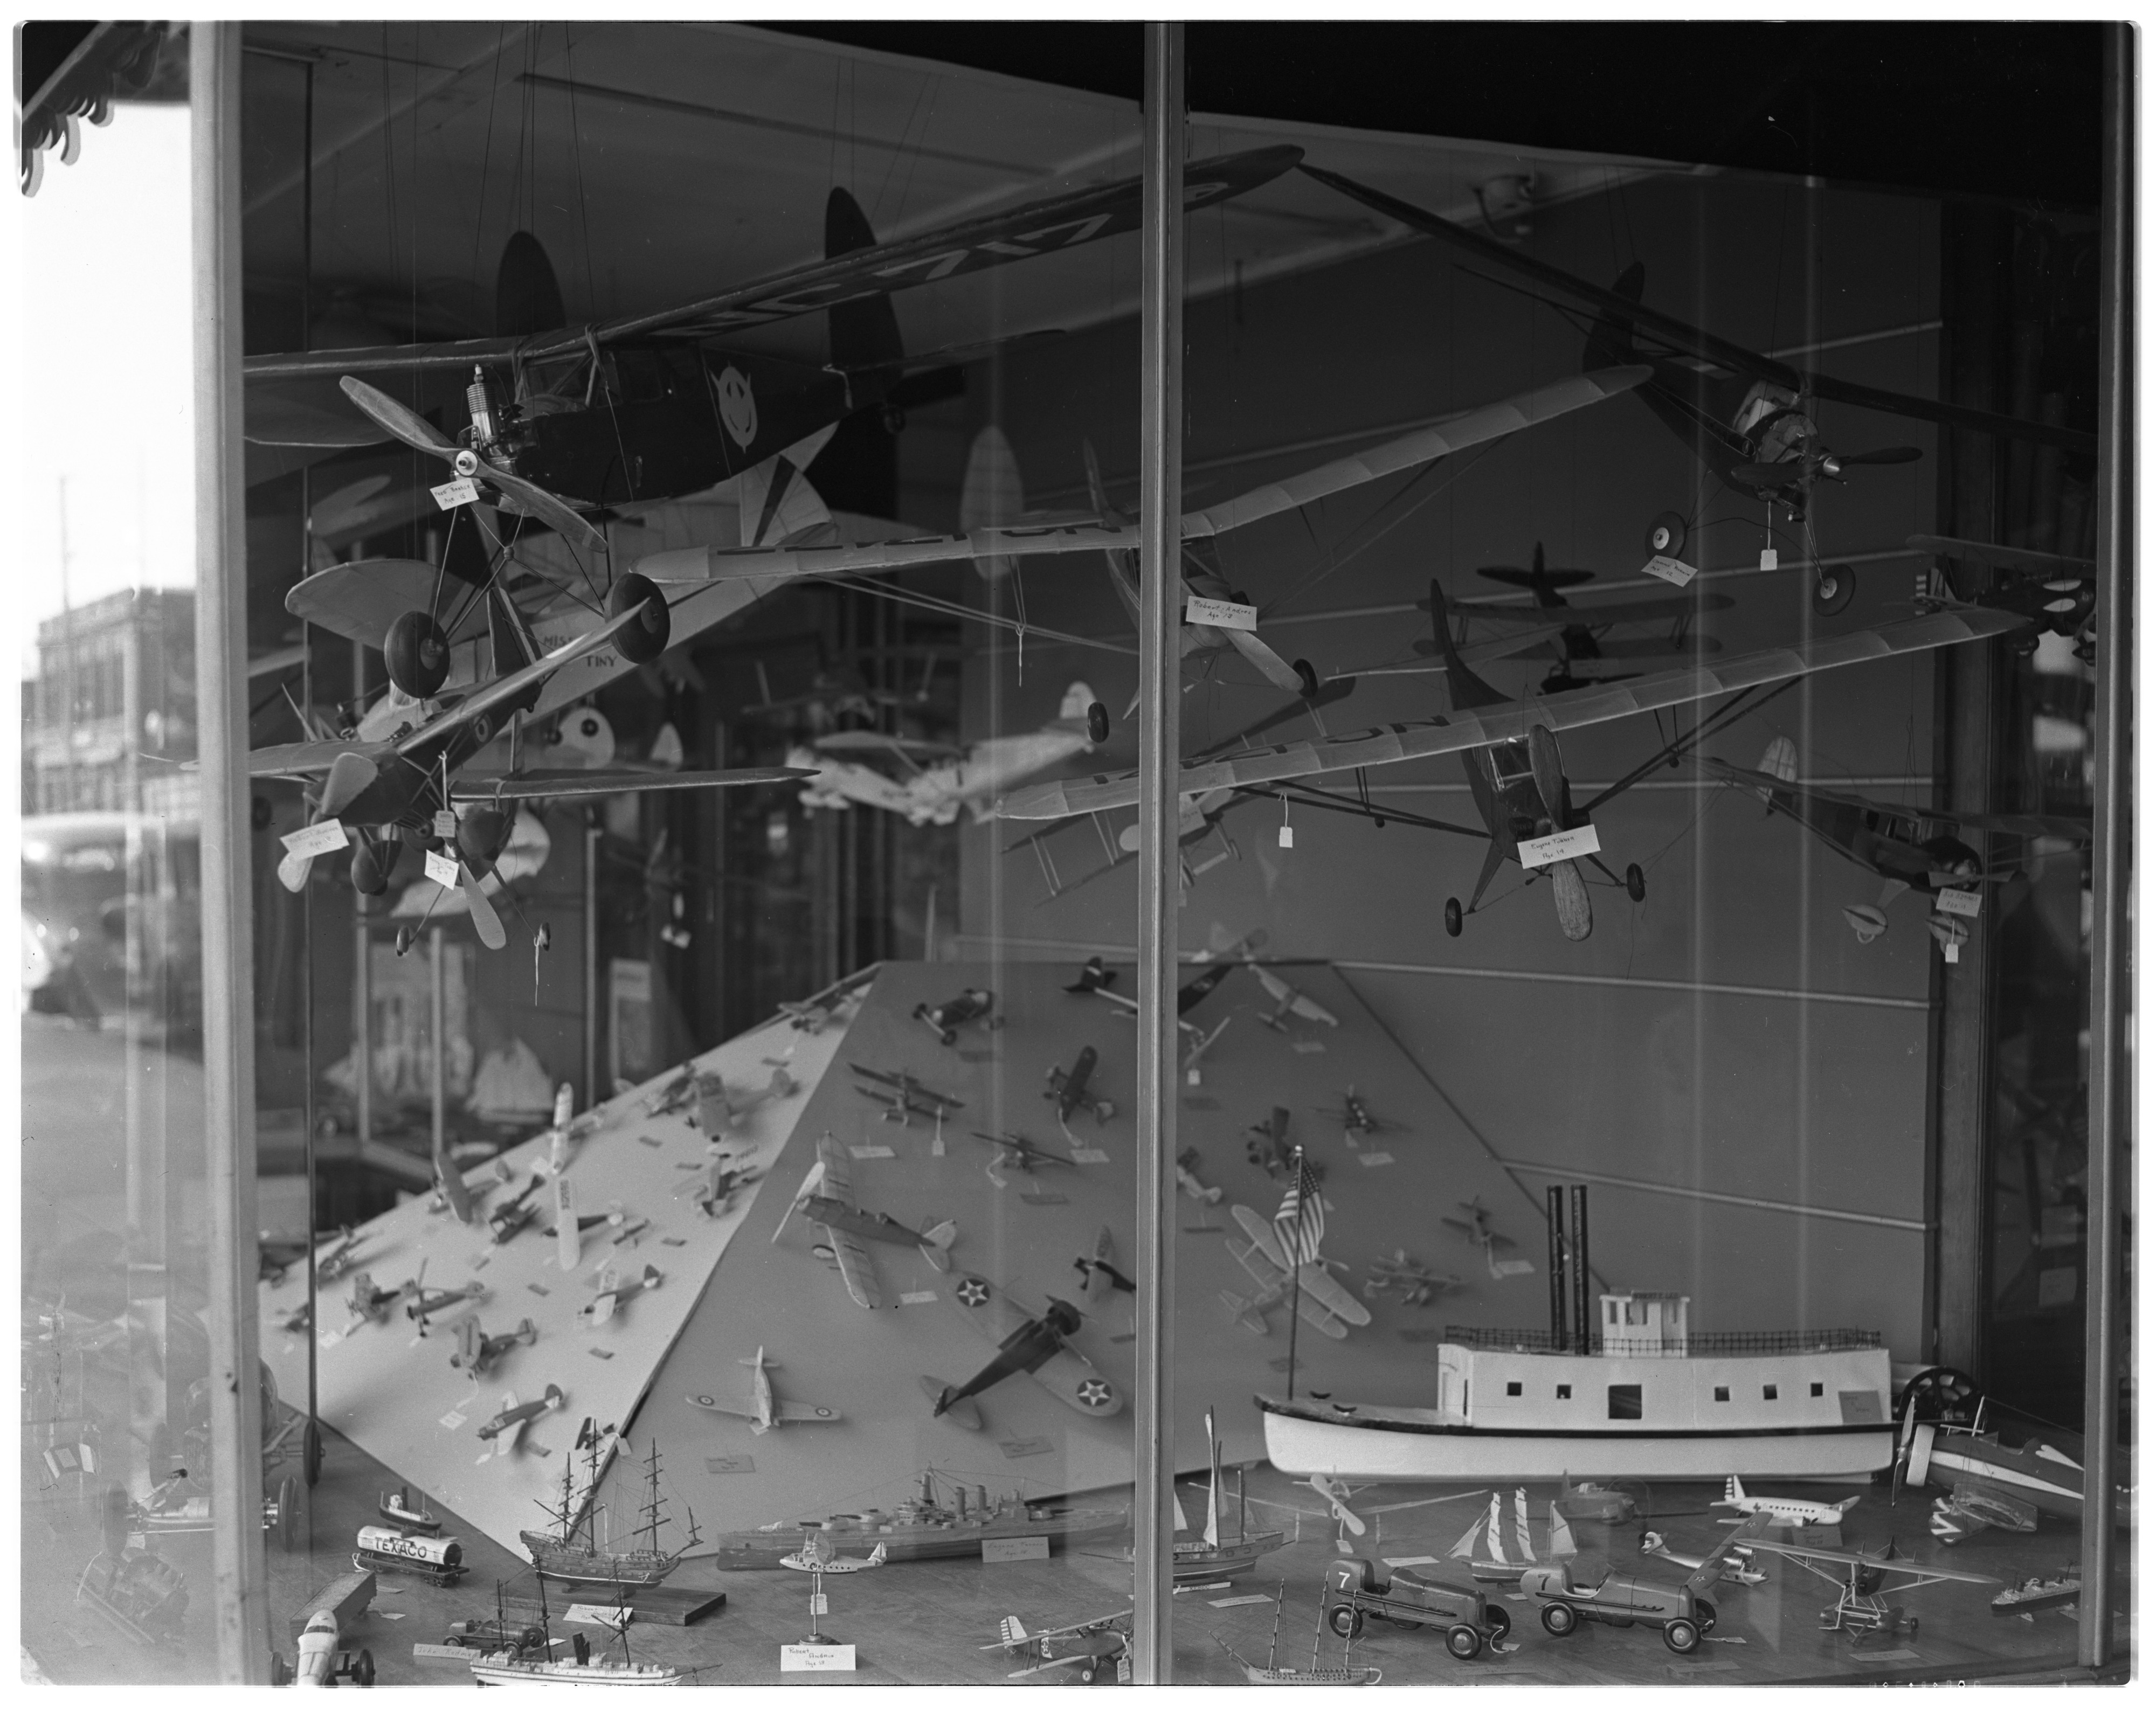 Airplanes and toys in Fiegel's Window, April 1940 image